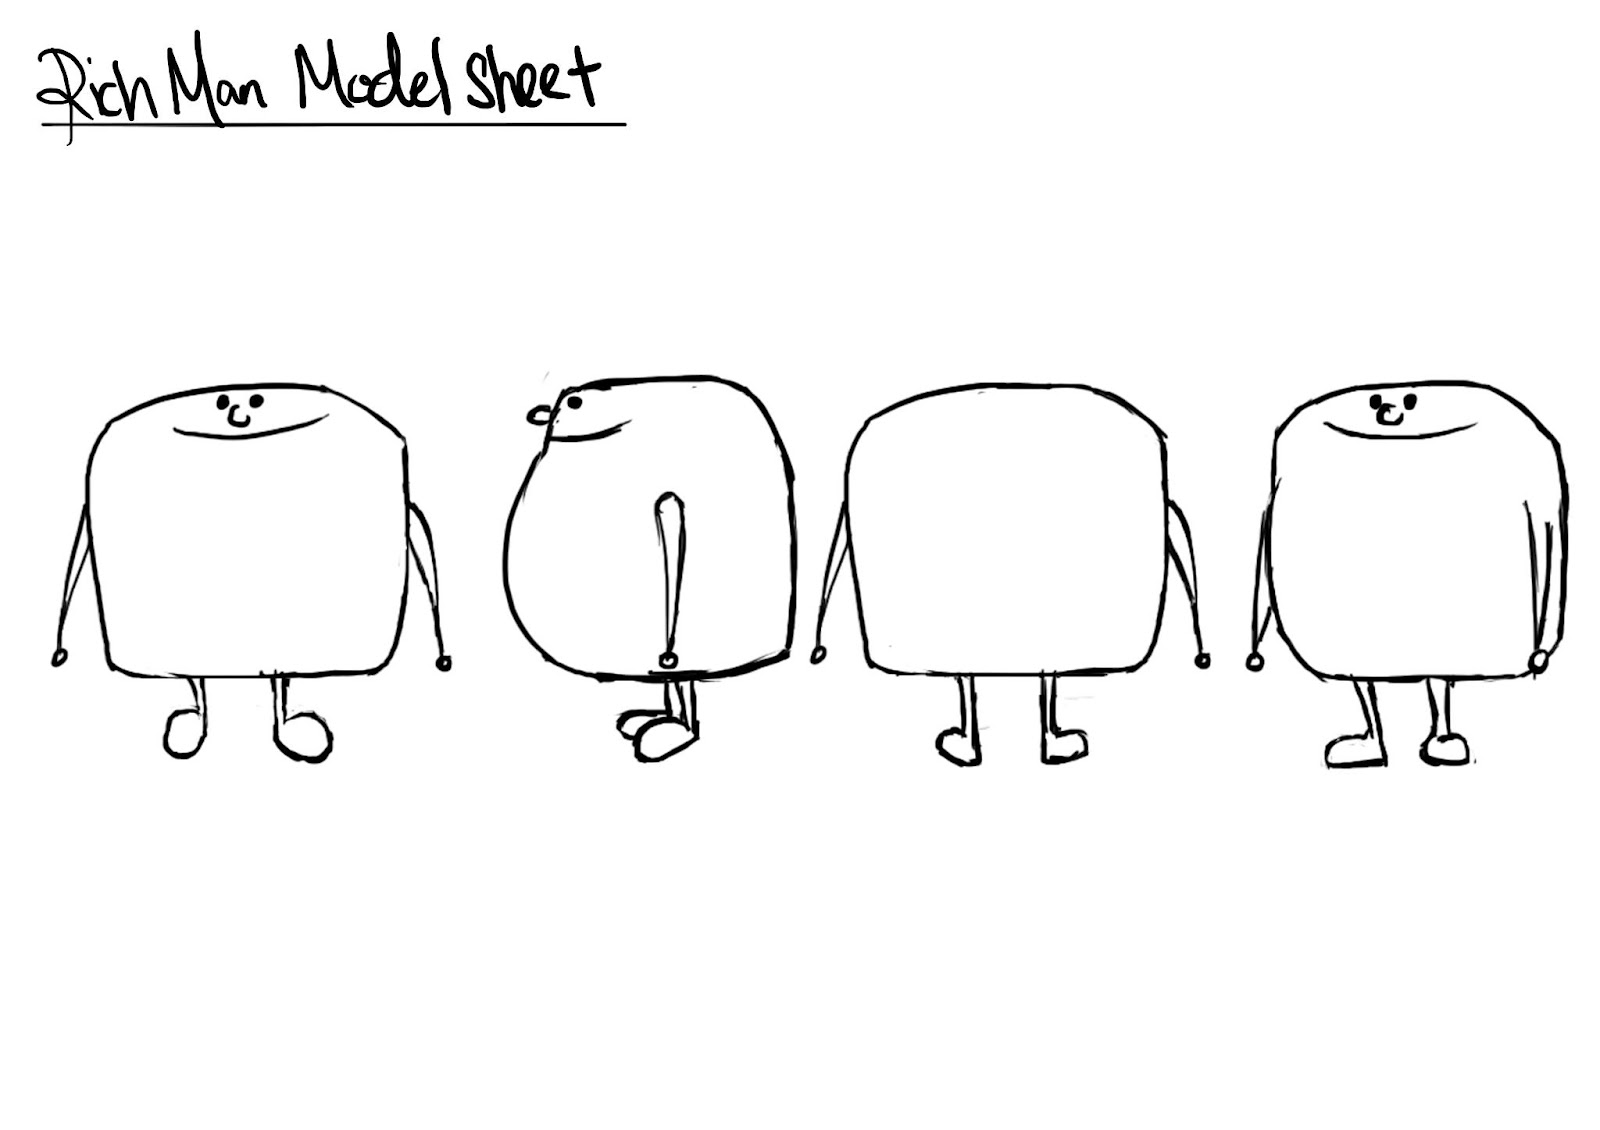 Studio Project Online Production Journal: Model sheet and